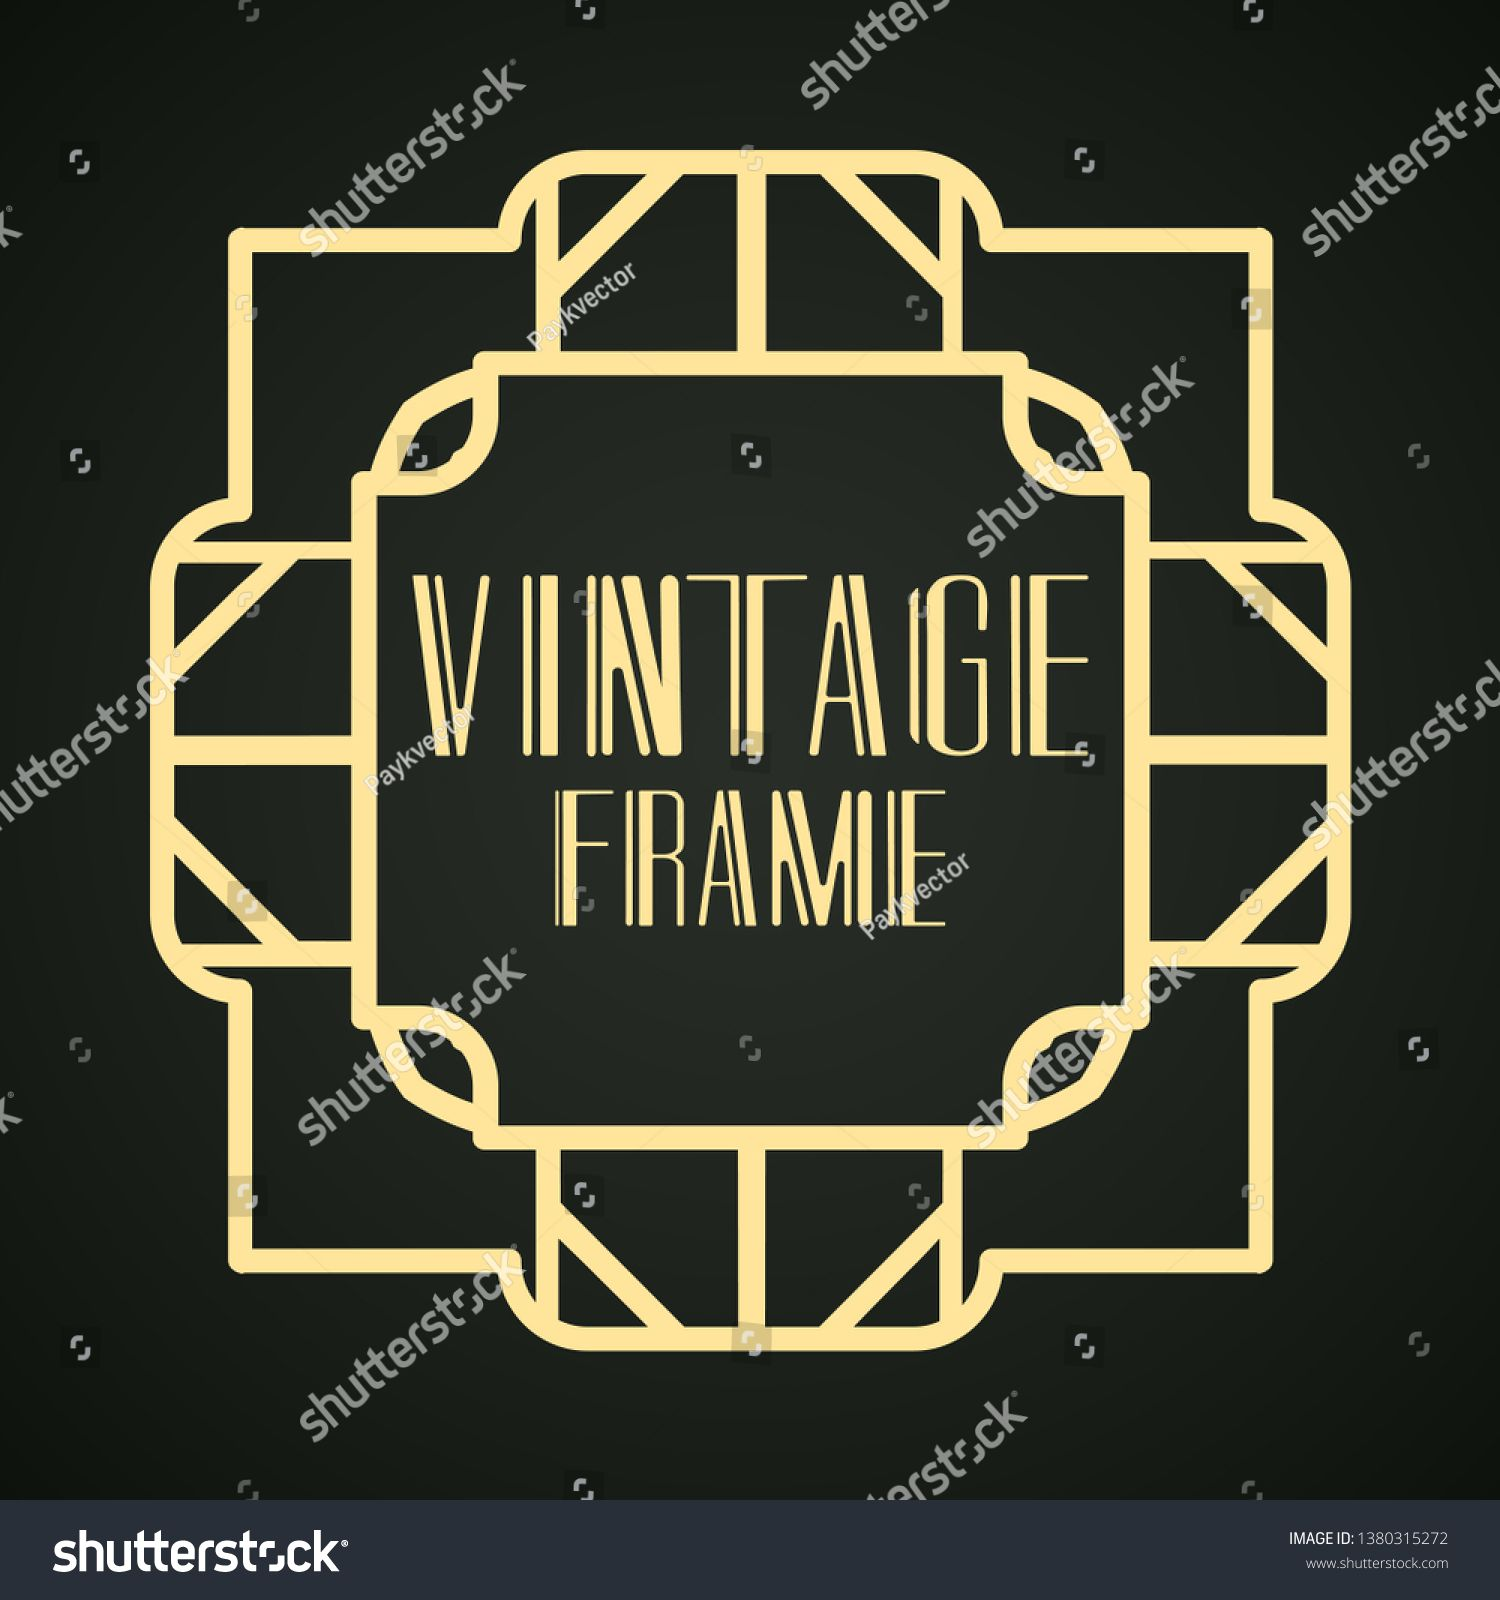 Modern Art Deco Frame Vintage Ornamental Border Design A Template For Invitations Leaflets Greeting Cards And Pa Modern Art Deco Luxury Background Art Deco